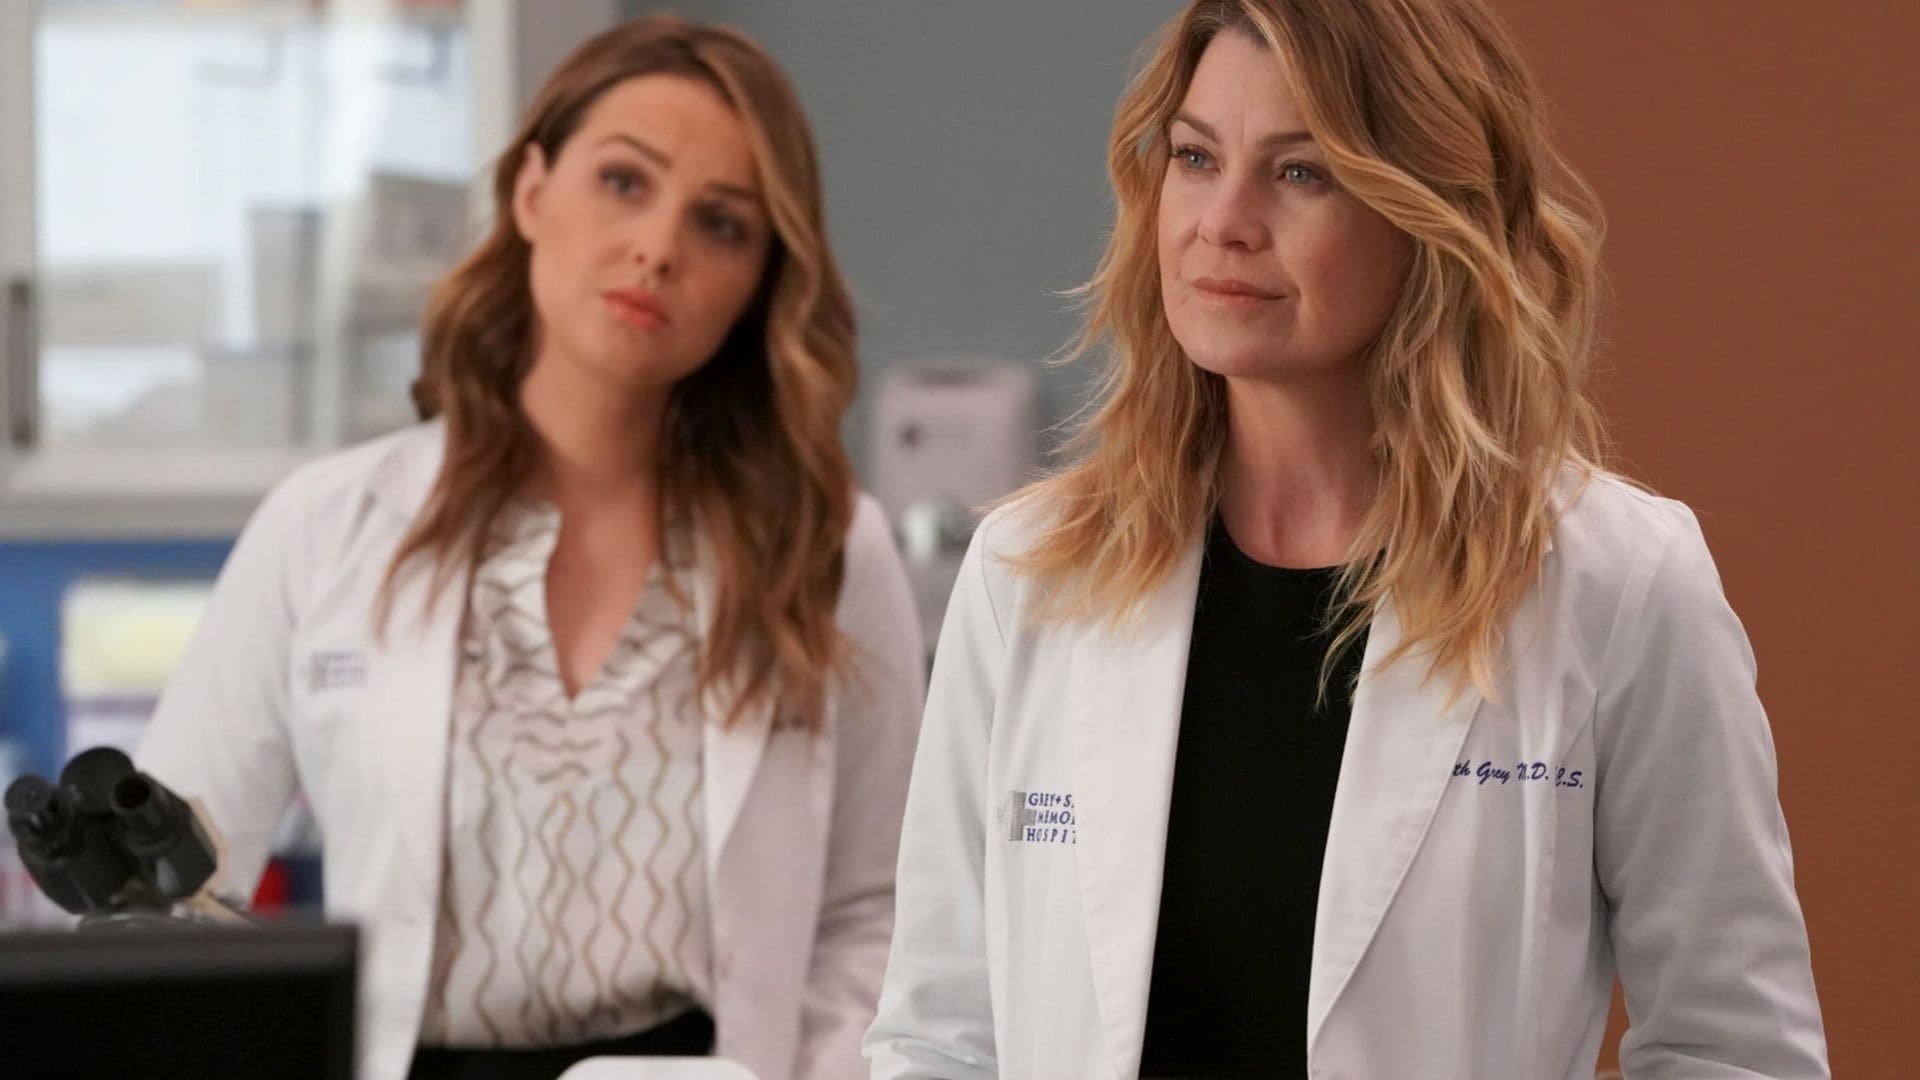 Greys Anatomy Season 14 Episode 14 S14e14 Watch Online Layarstar